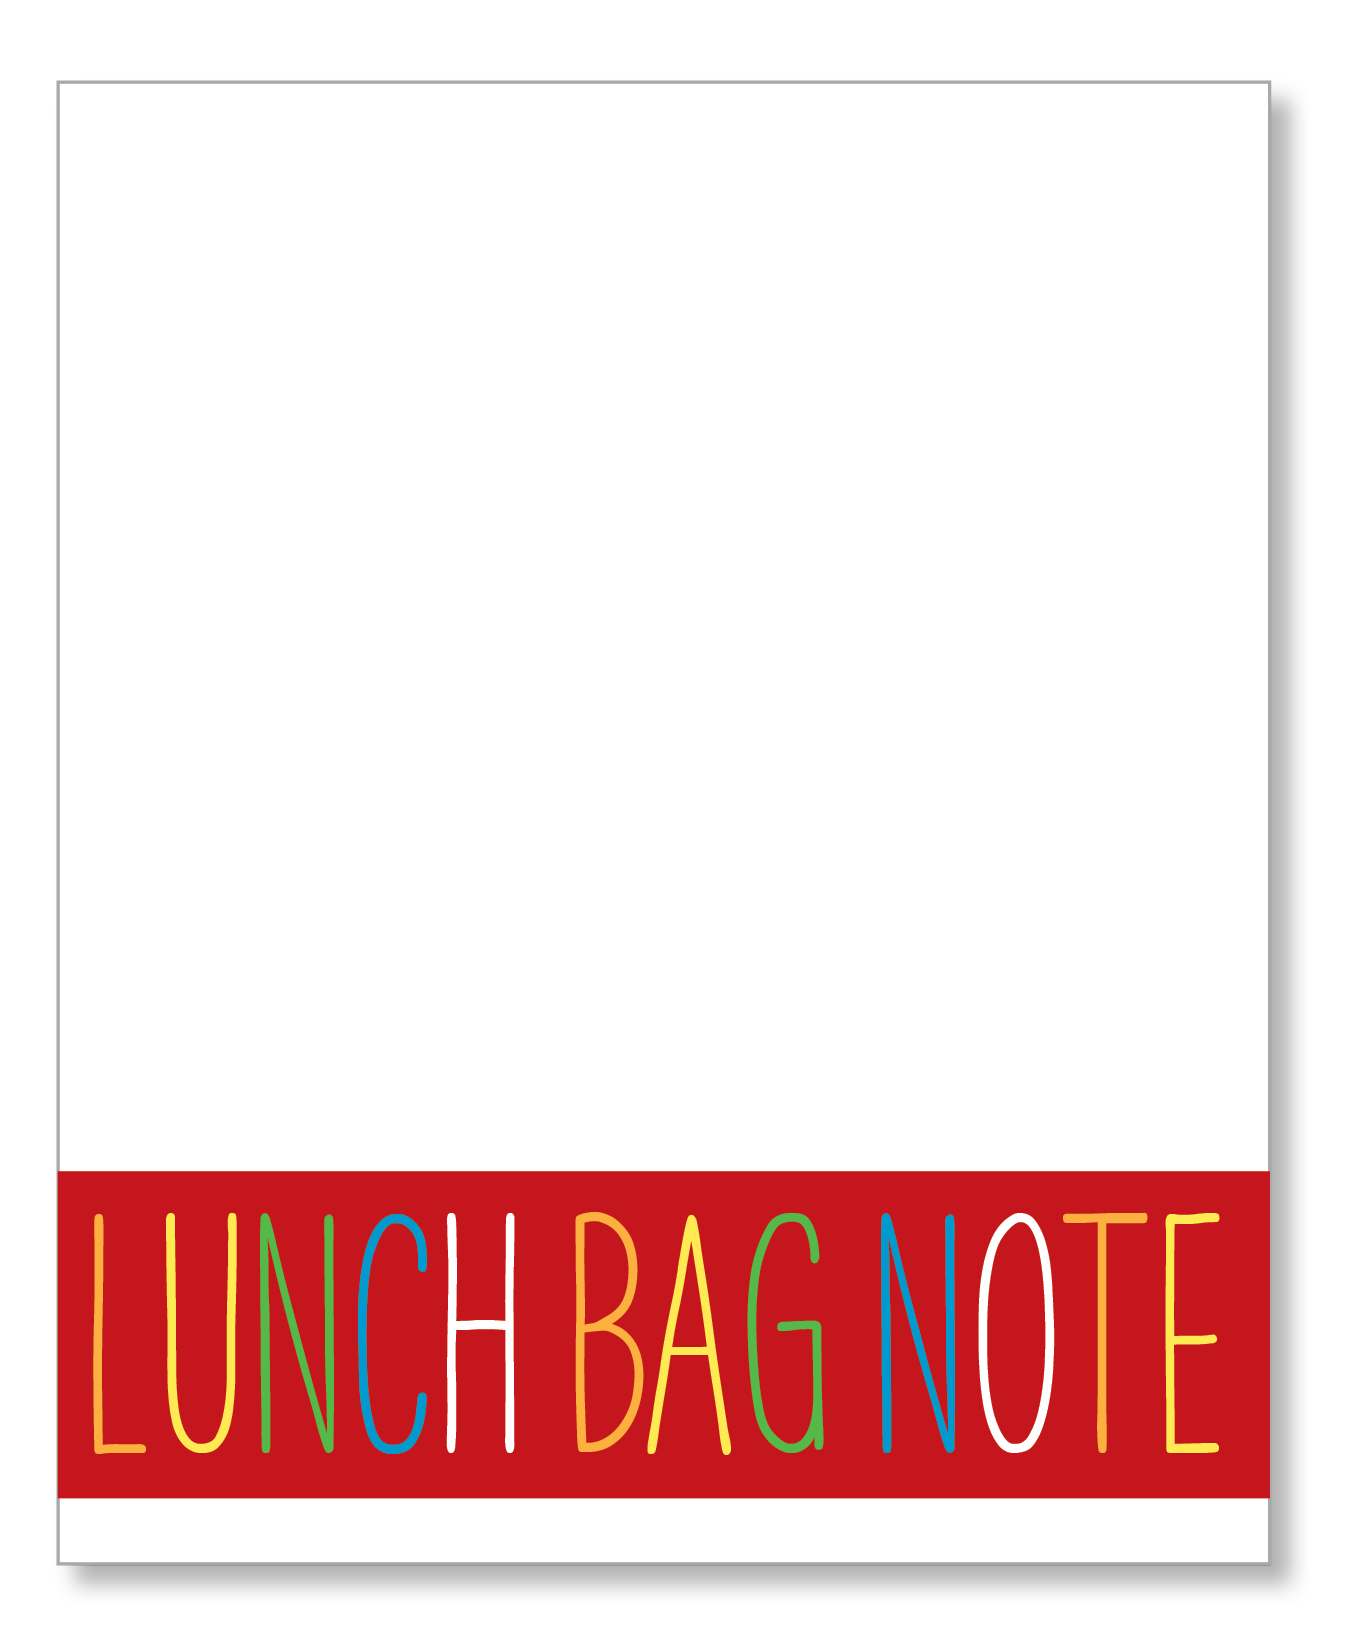 Lunch Bag Note